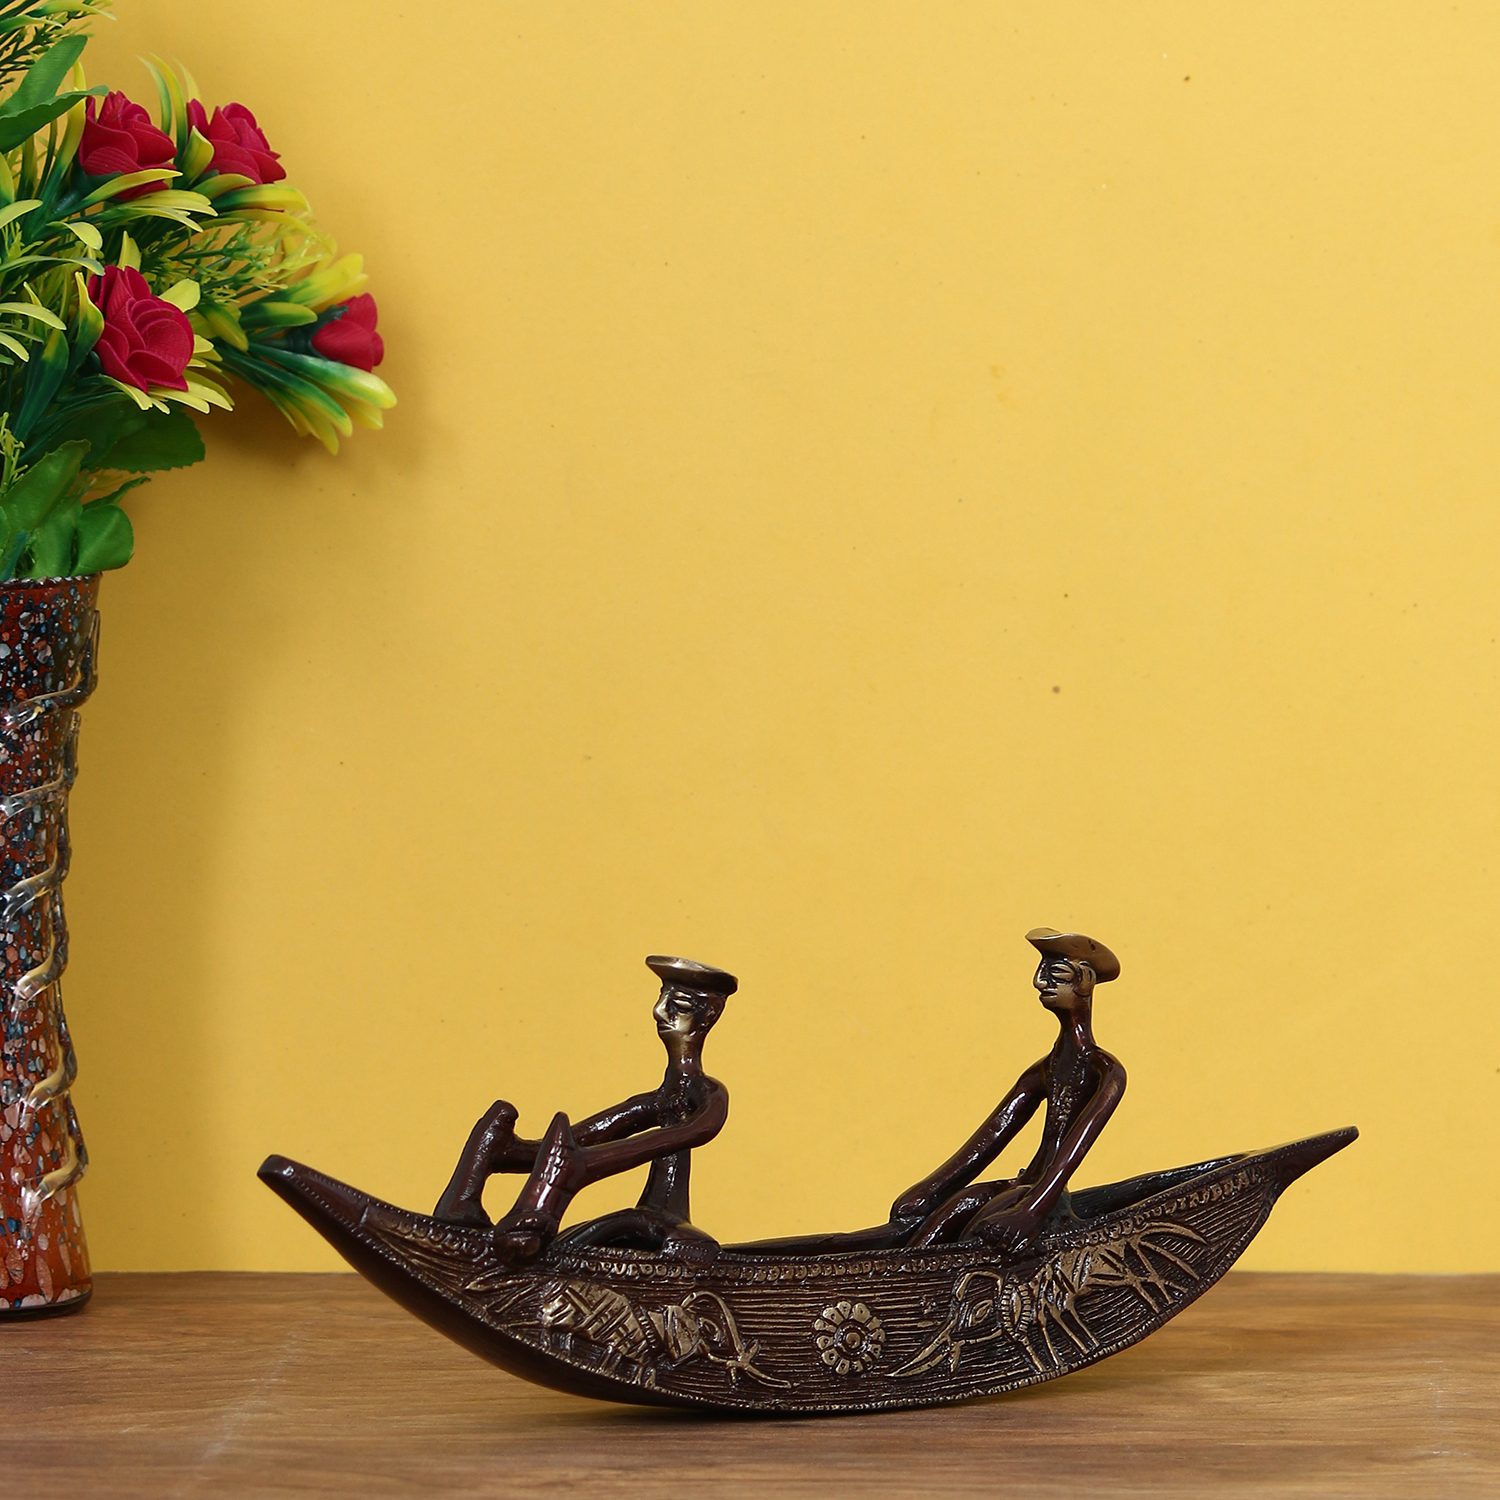 Antique Finish 2 Men in Boat Brass Decorative Showpiece Indian Home Decor